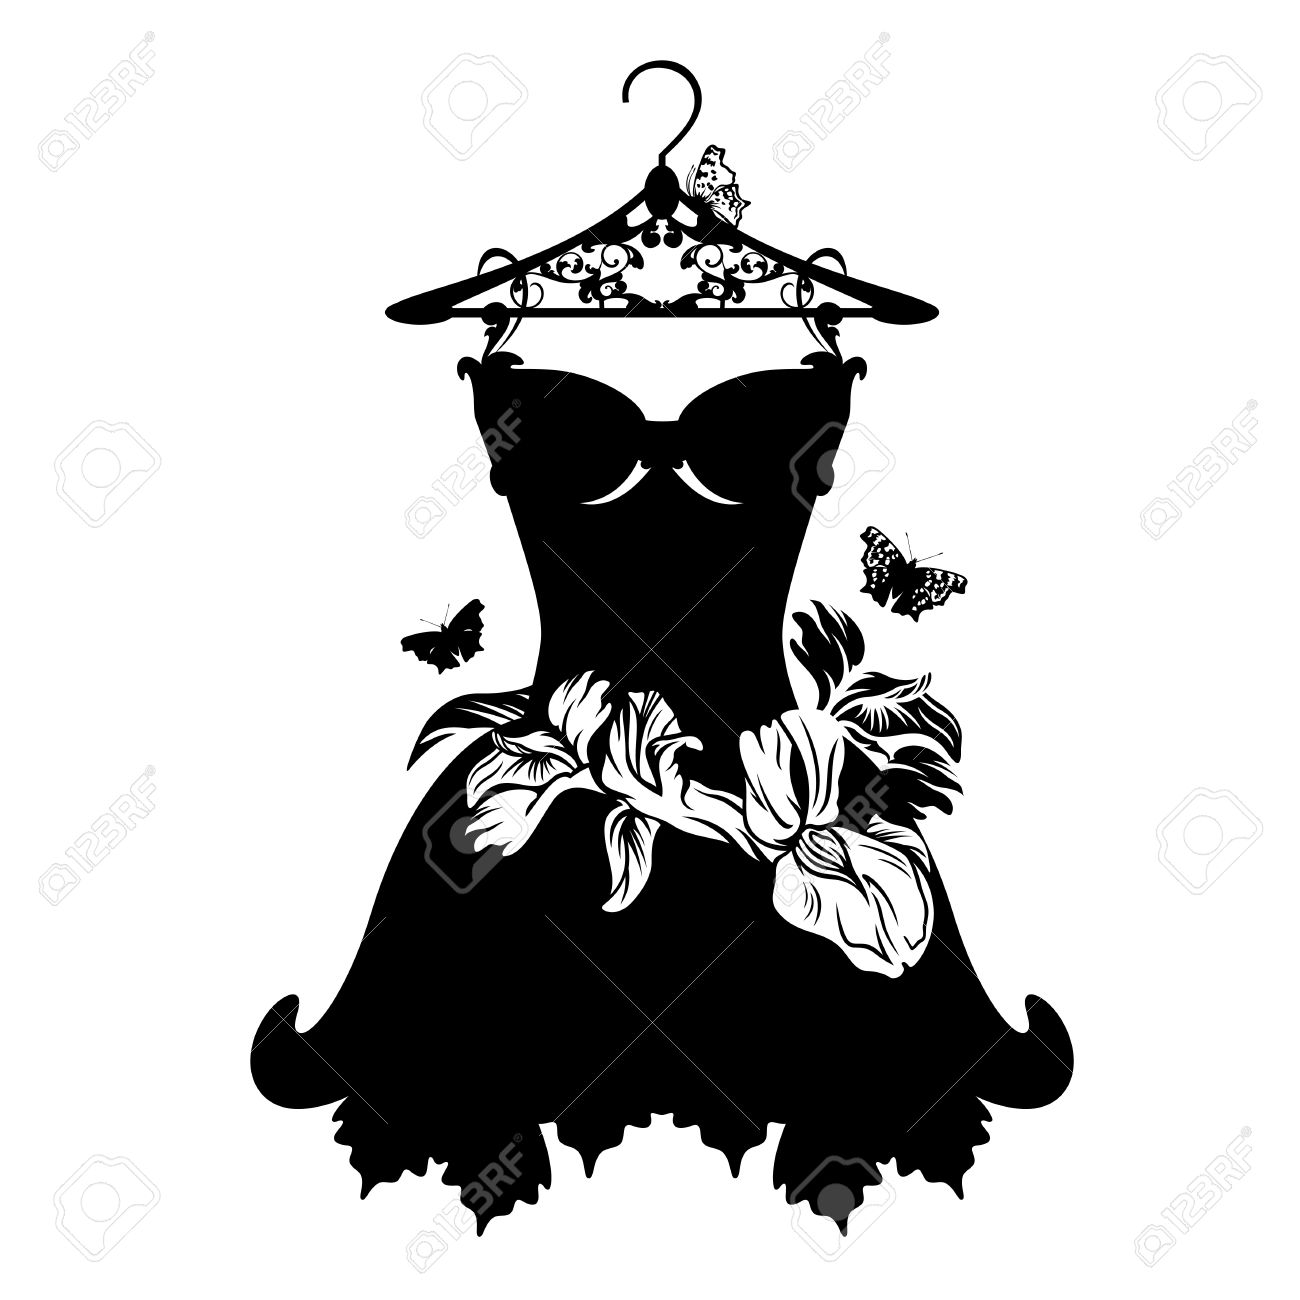 3035 Little Black Dress Cliparts Stock Vector And Royalty Free